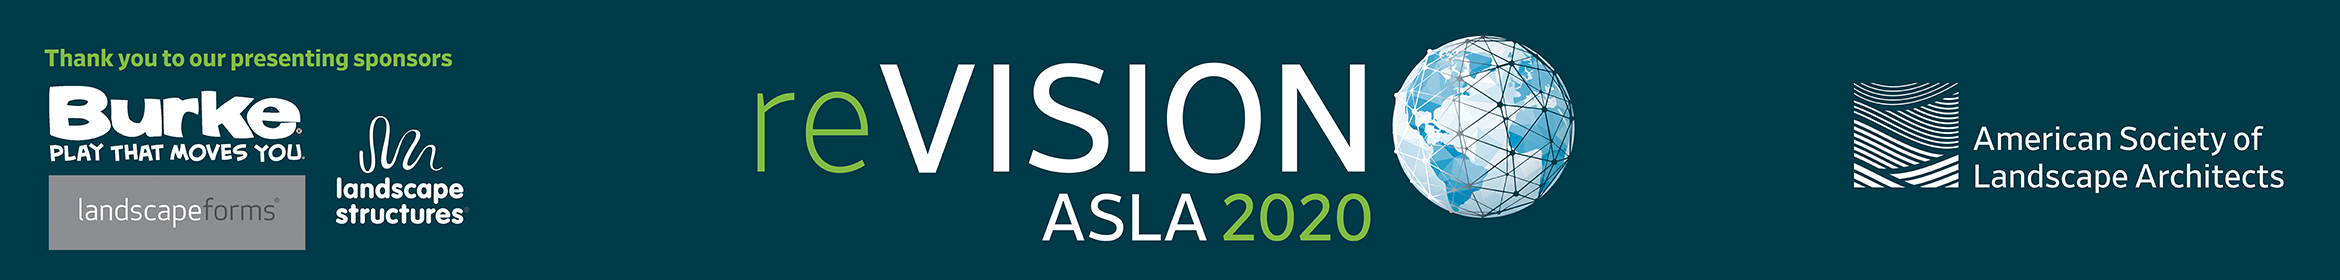 reVISION ASLA 2020 Main banner